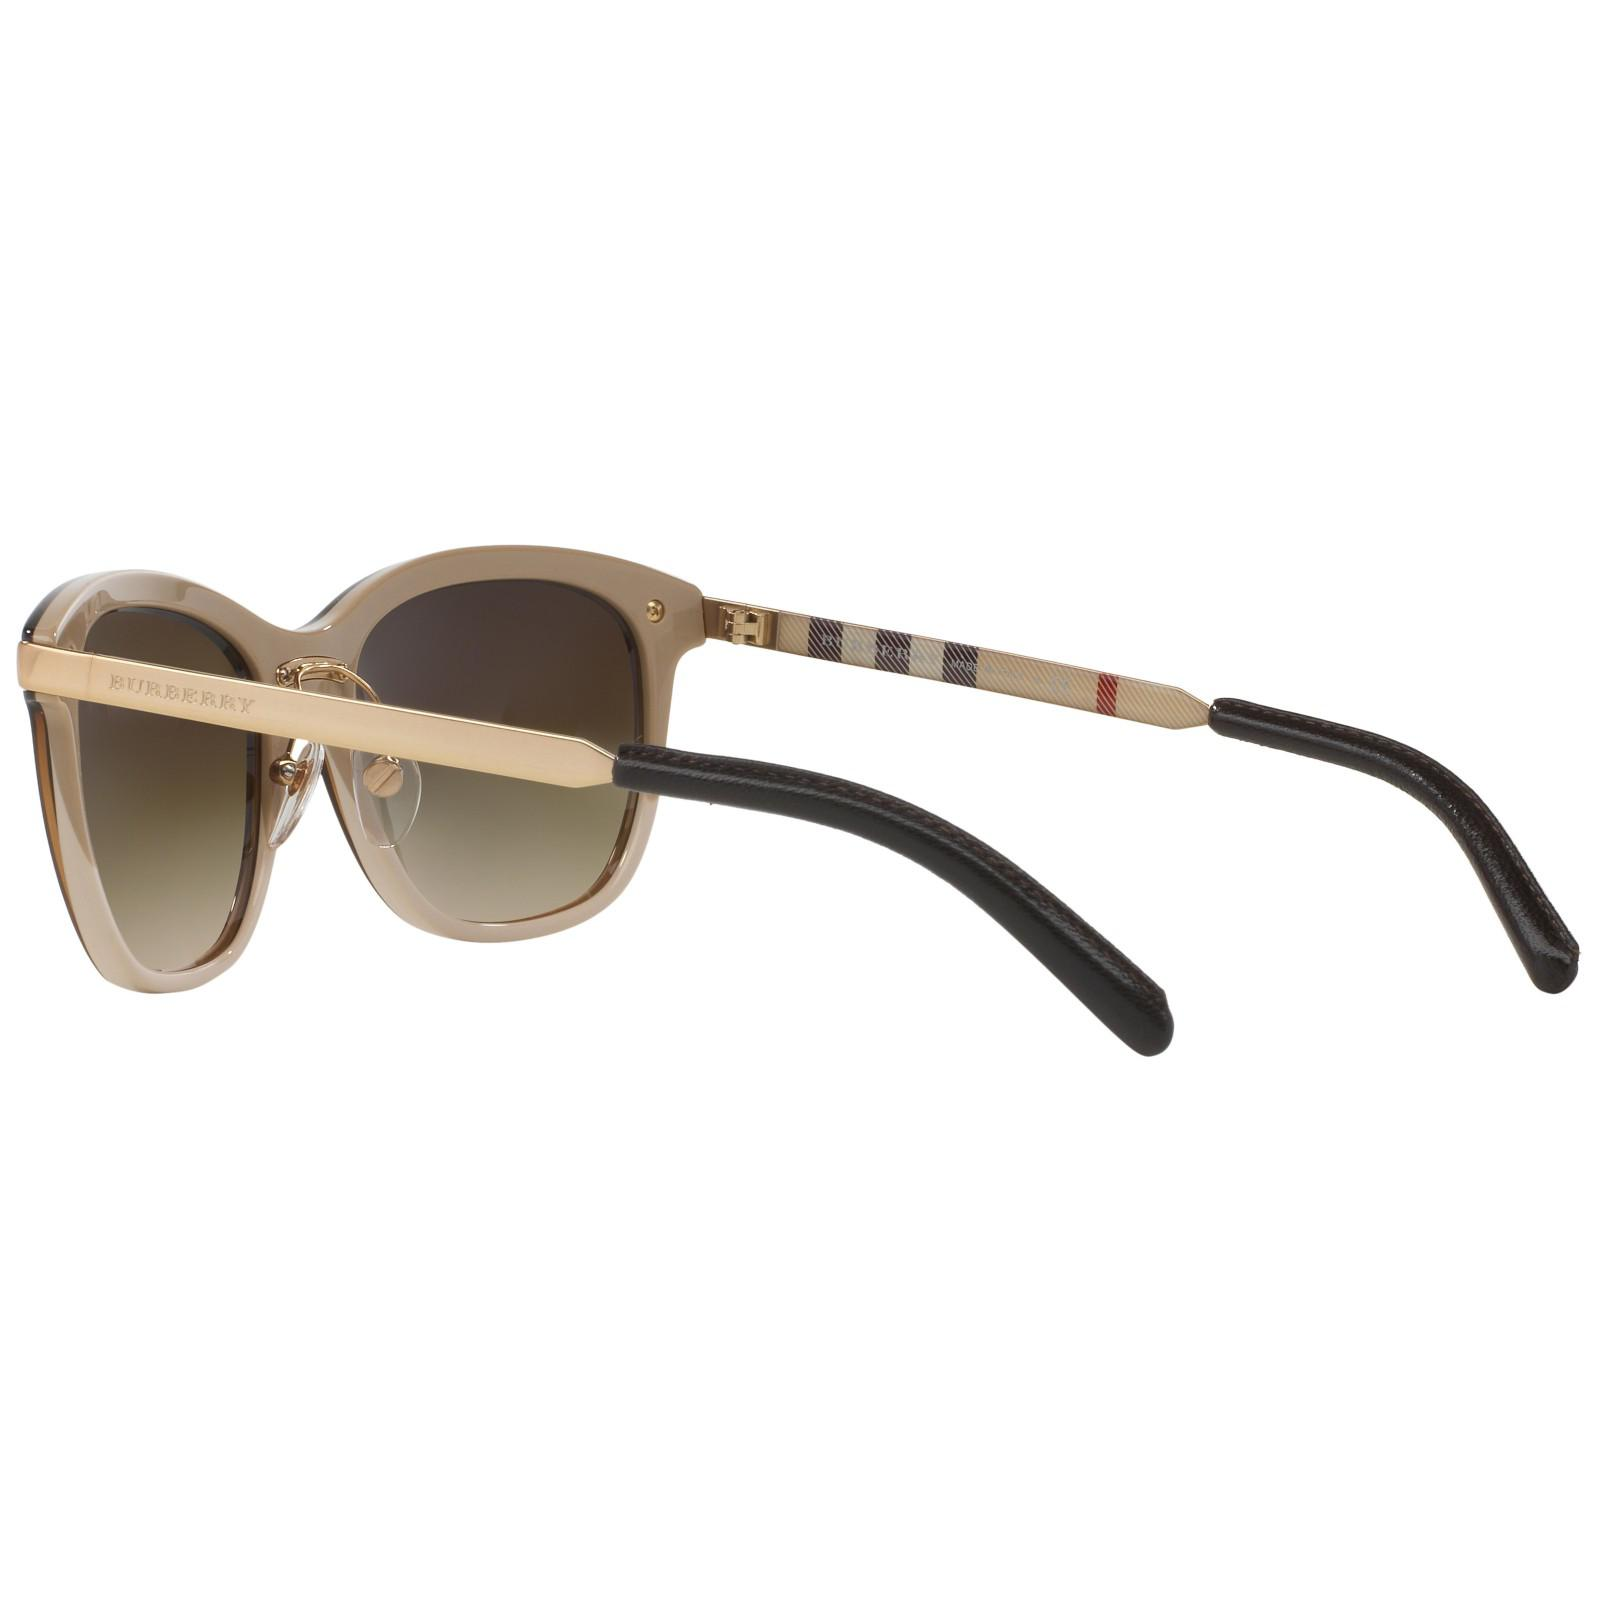 Burberry Be4169 Gradient Square Sunglasses in Brown